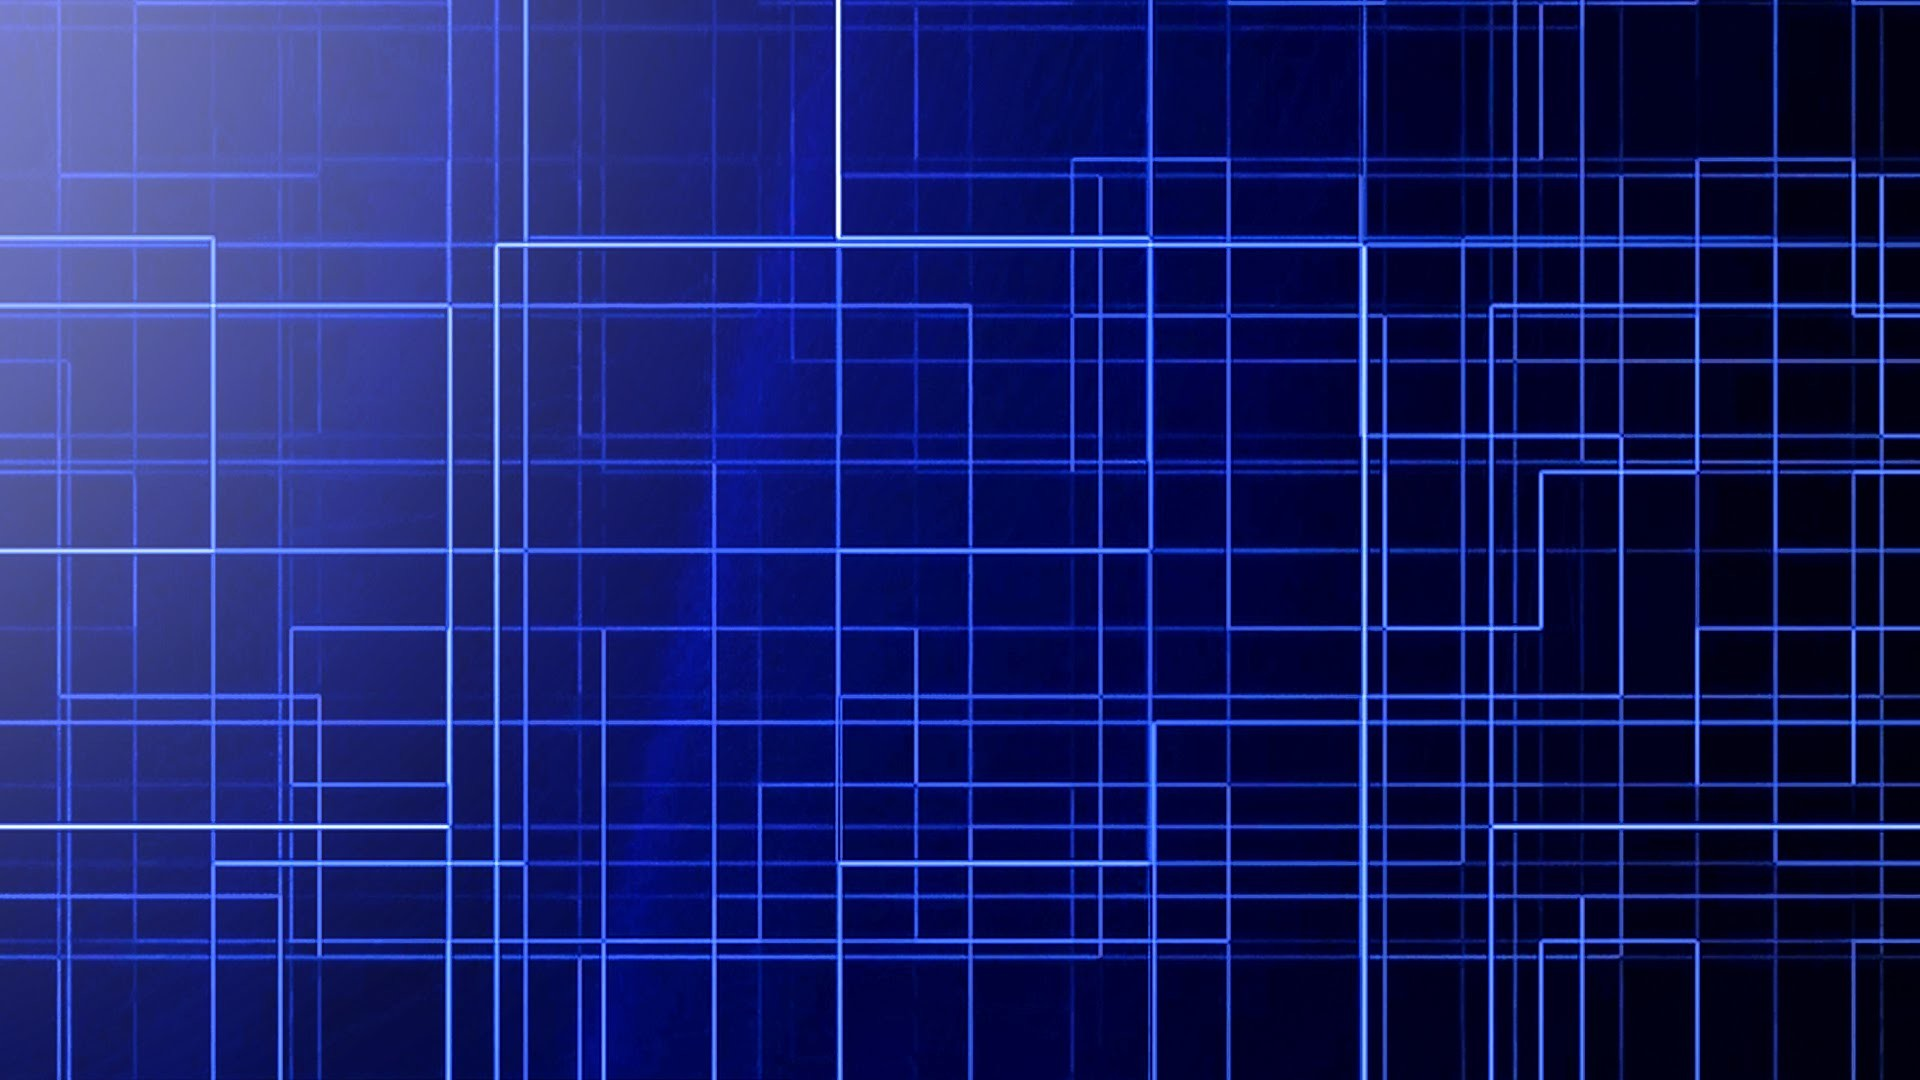 Abstract Technology Wallpaper Group With 78 Items: Technology Background Images (43+ Pictures